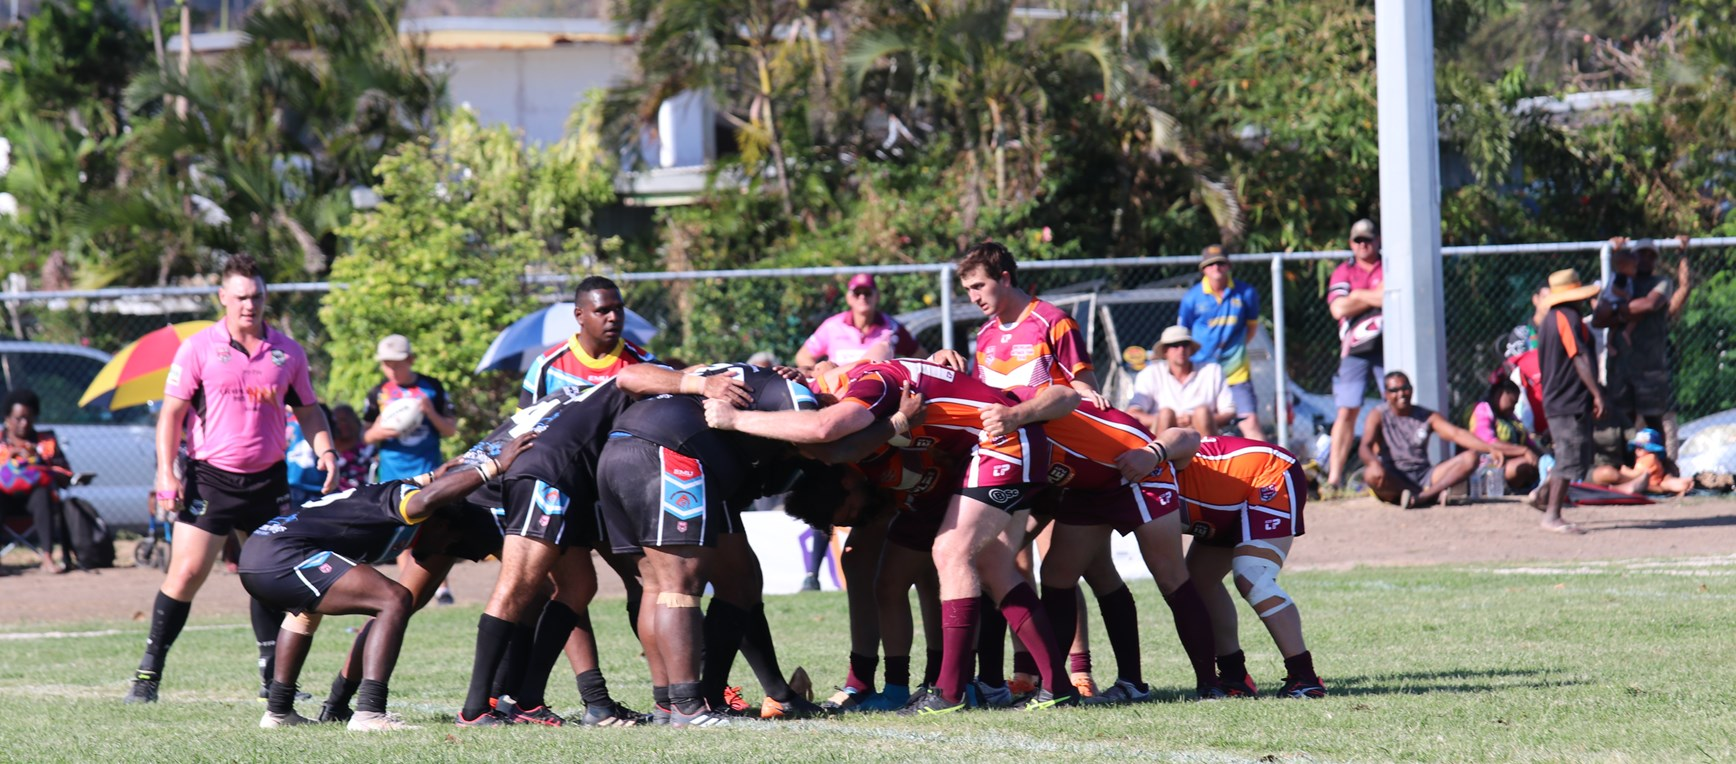 In pictures: Queensland Outback v North Queensland United